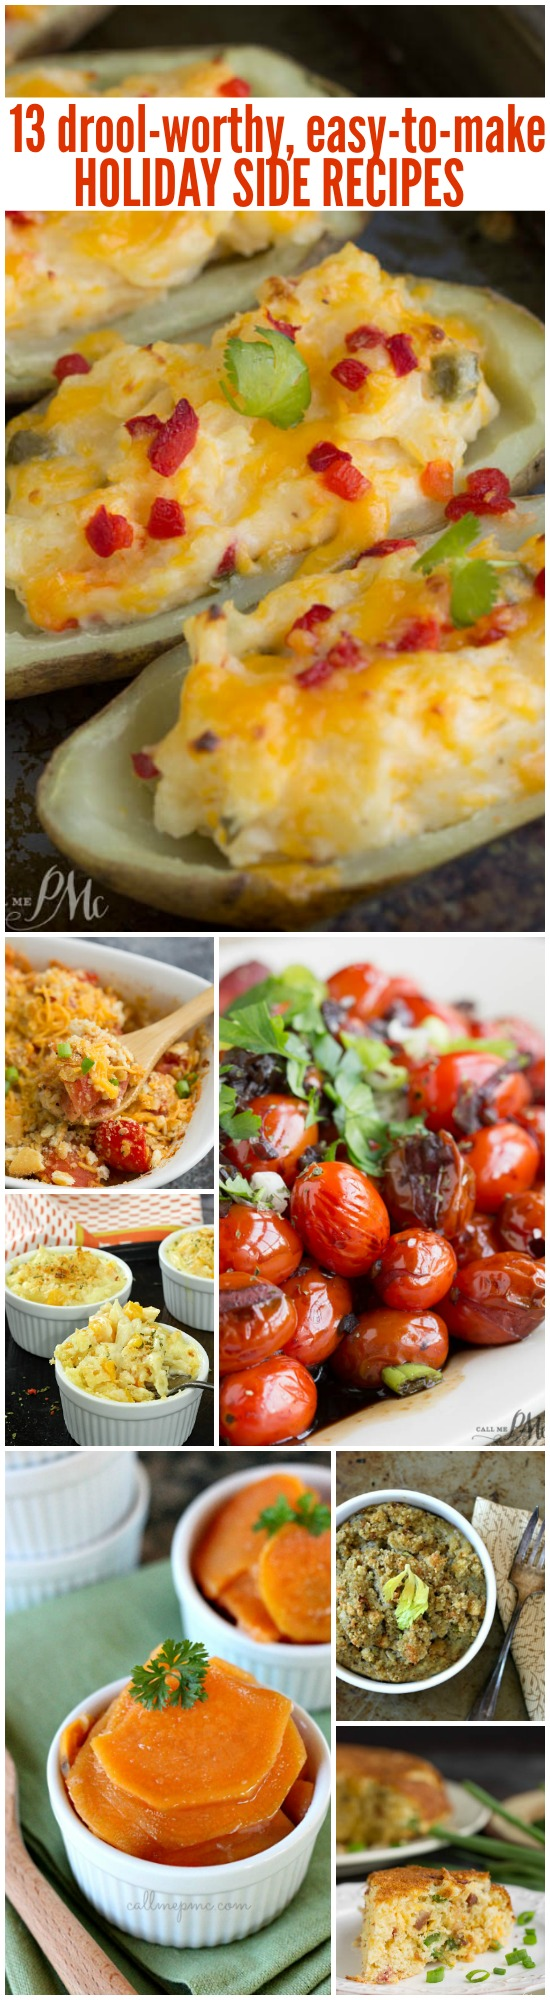 drool-worthy, easy-to-make holiday sides - Easy to Make Holiday Side Dish Recipes. They are comprised of a combination of delicious holiday side dish recipes that are perfect for Thanksgiving or Christmas celebrations.